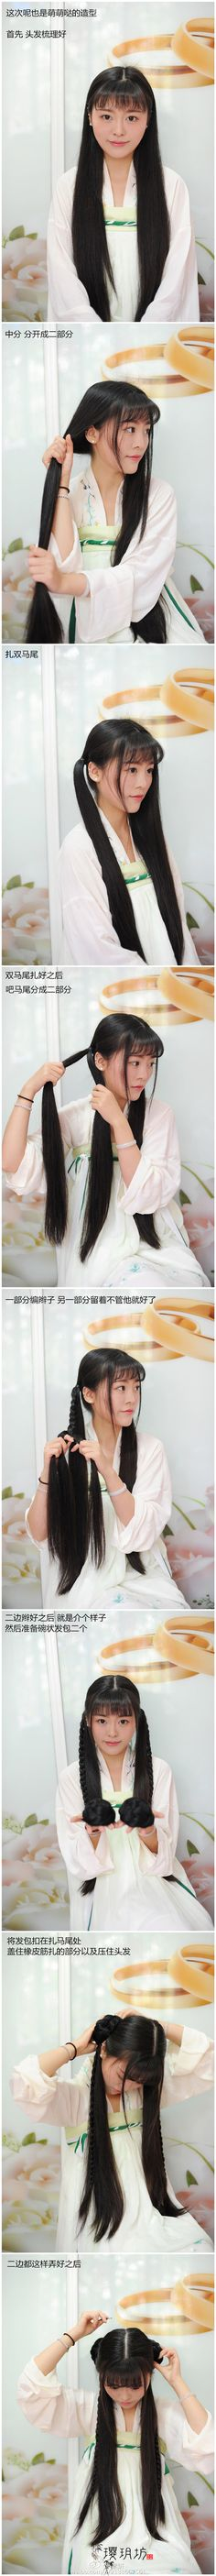 Hairstyle for hanfu - Part 1 of 2